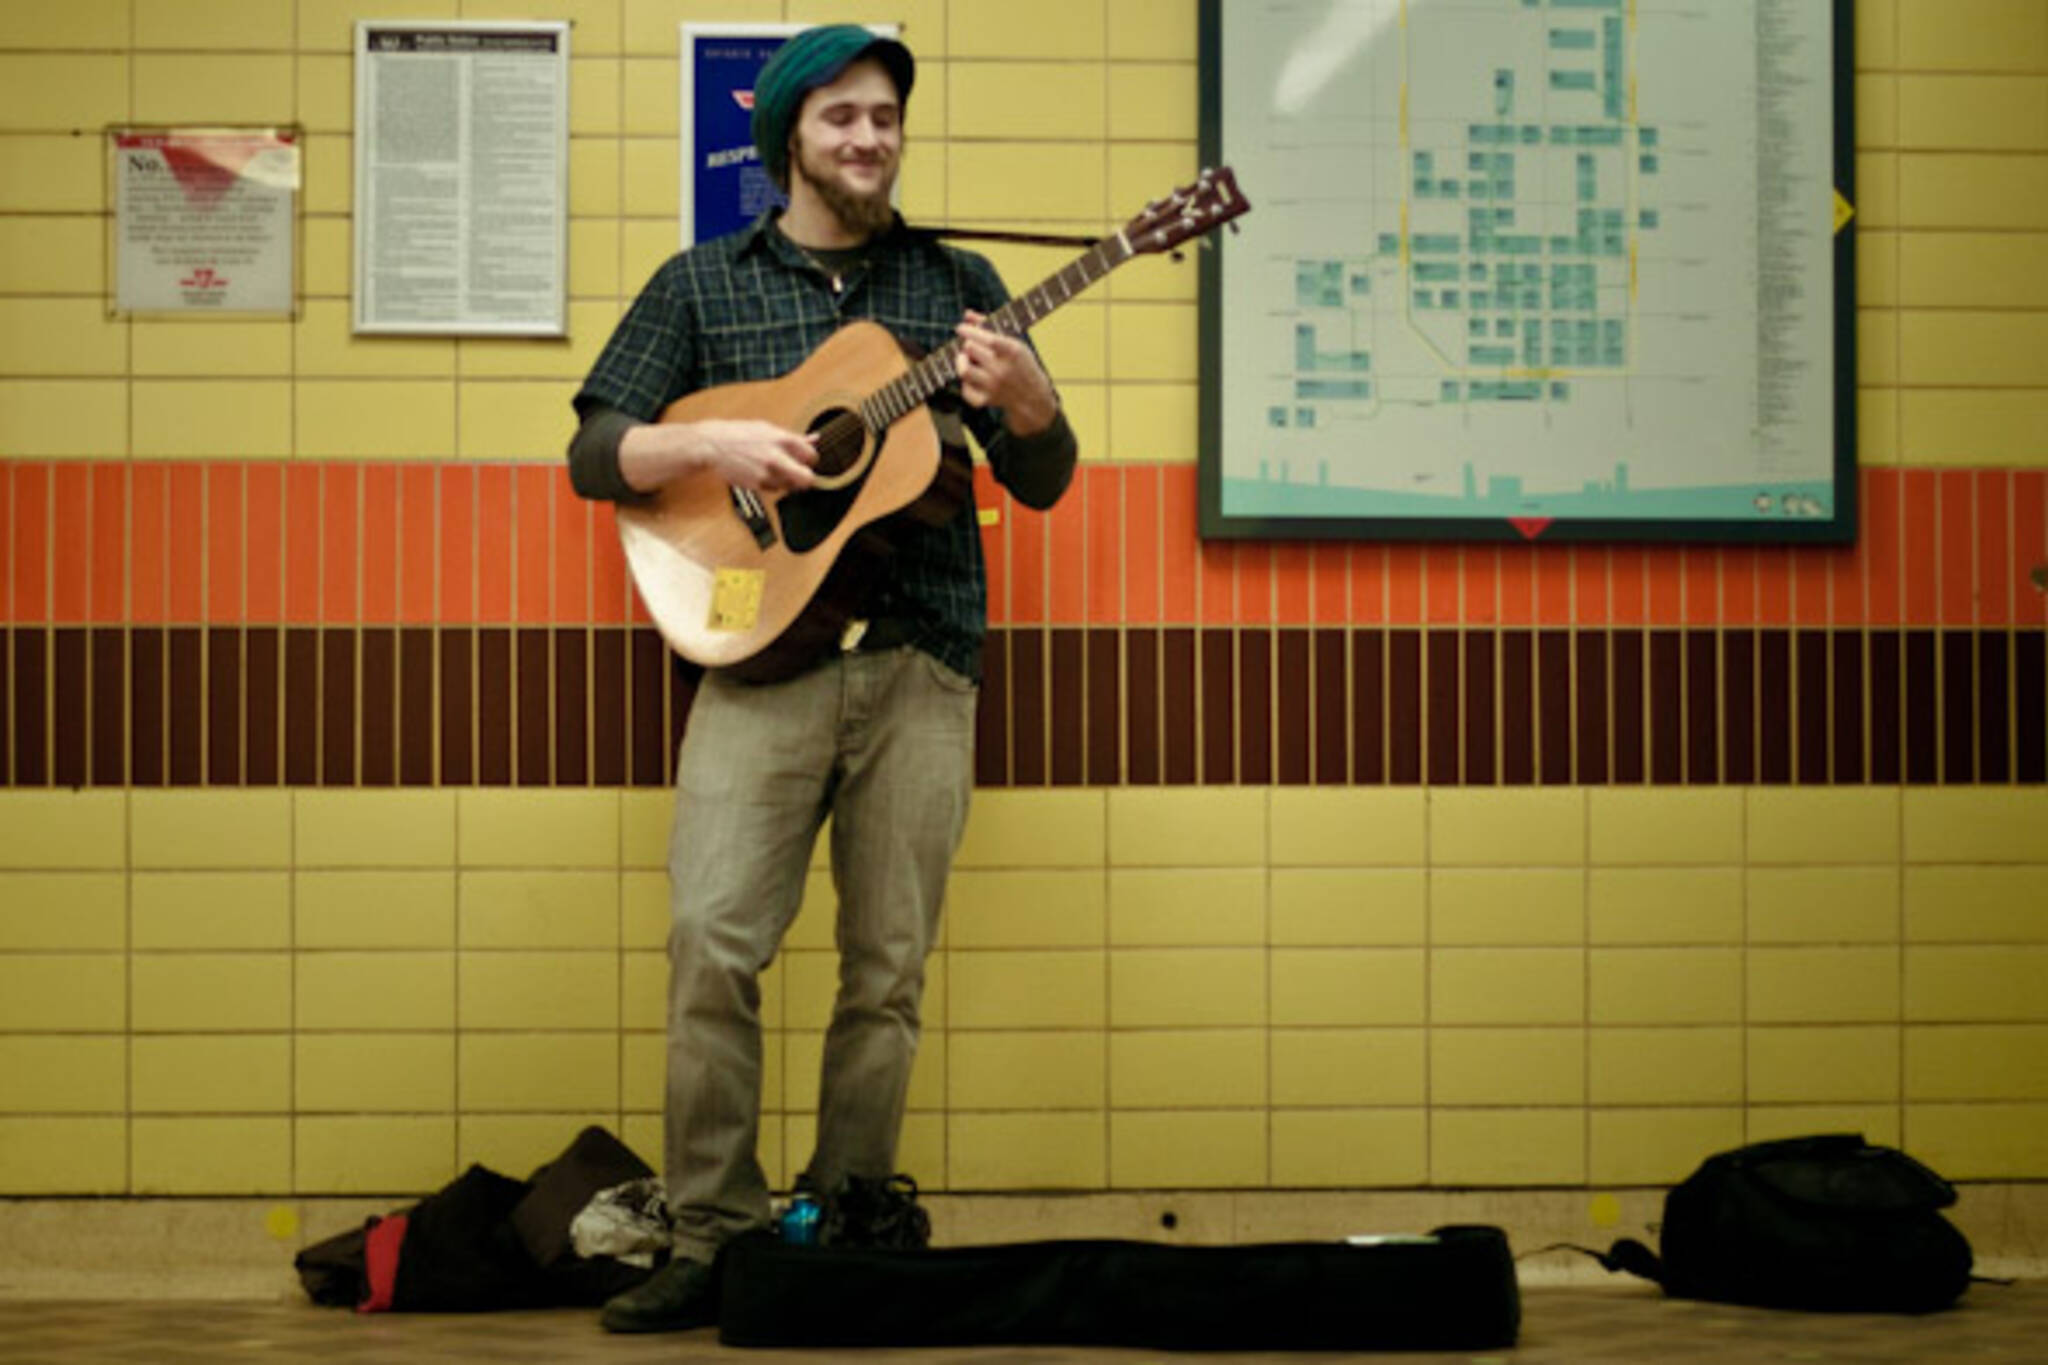 TTC Busker Lane Argue